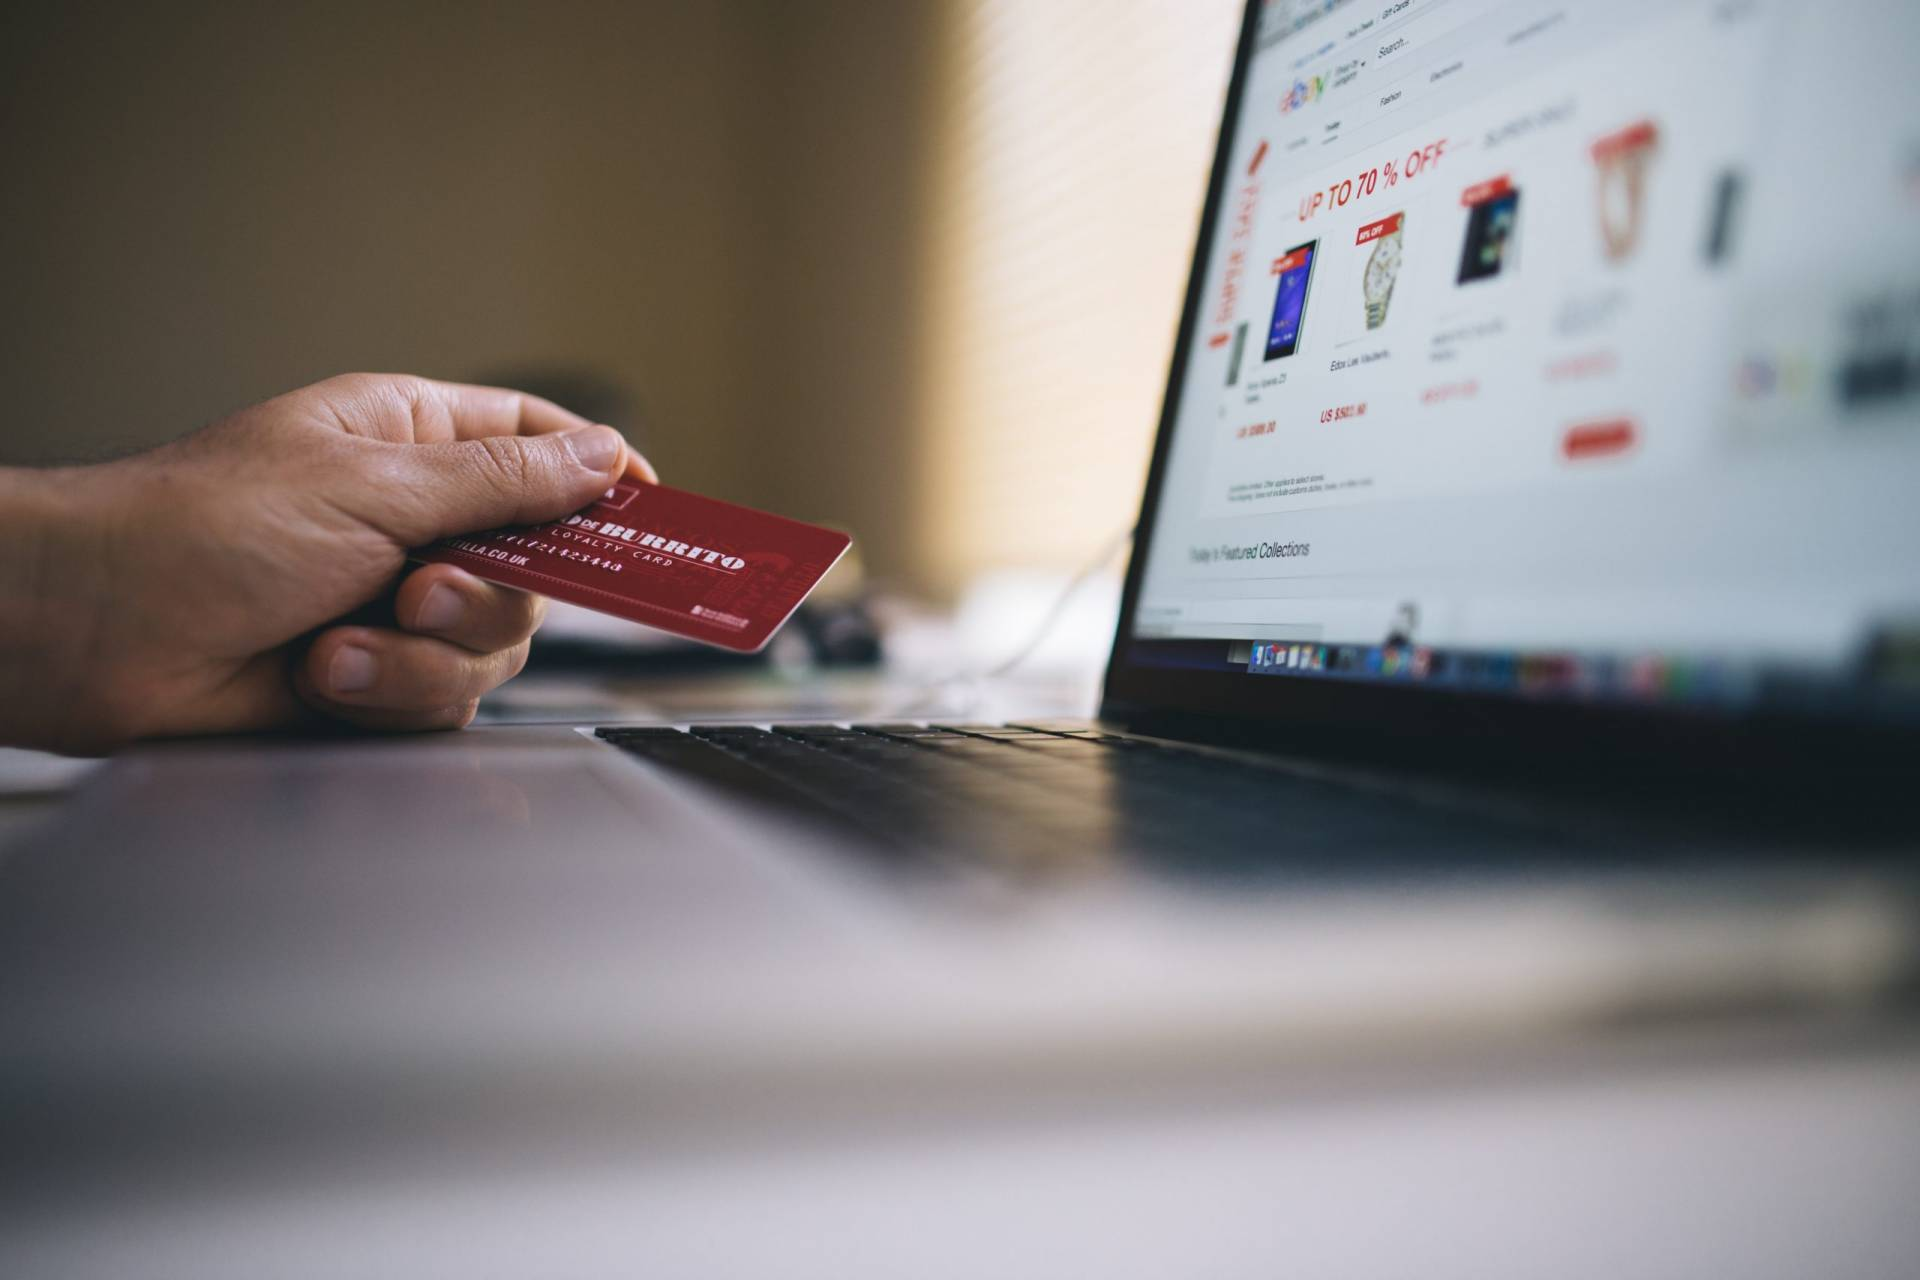 5 Tricks to Increase Your Online Business's Value